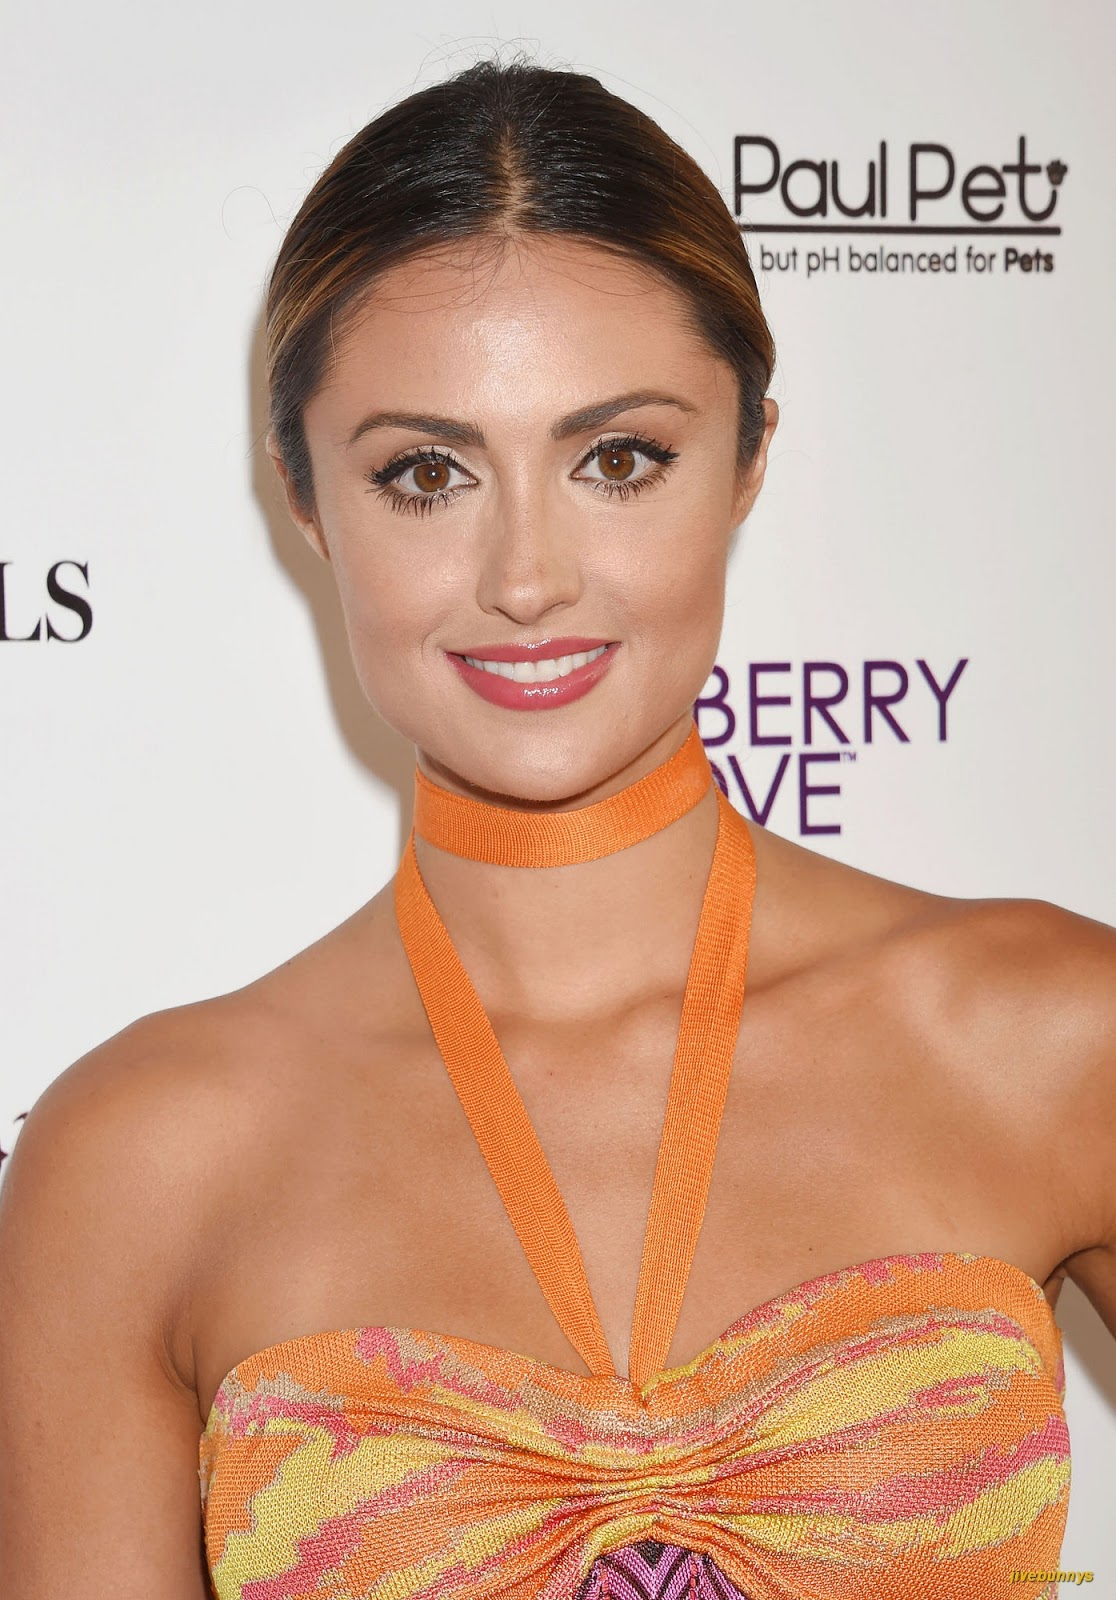 jivebunnys female celebrity picture gallery katie cleary